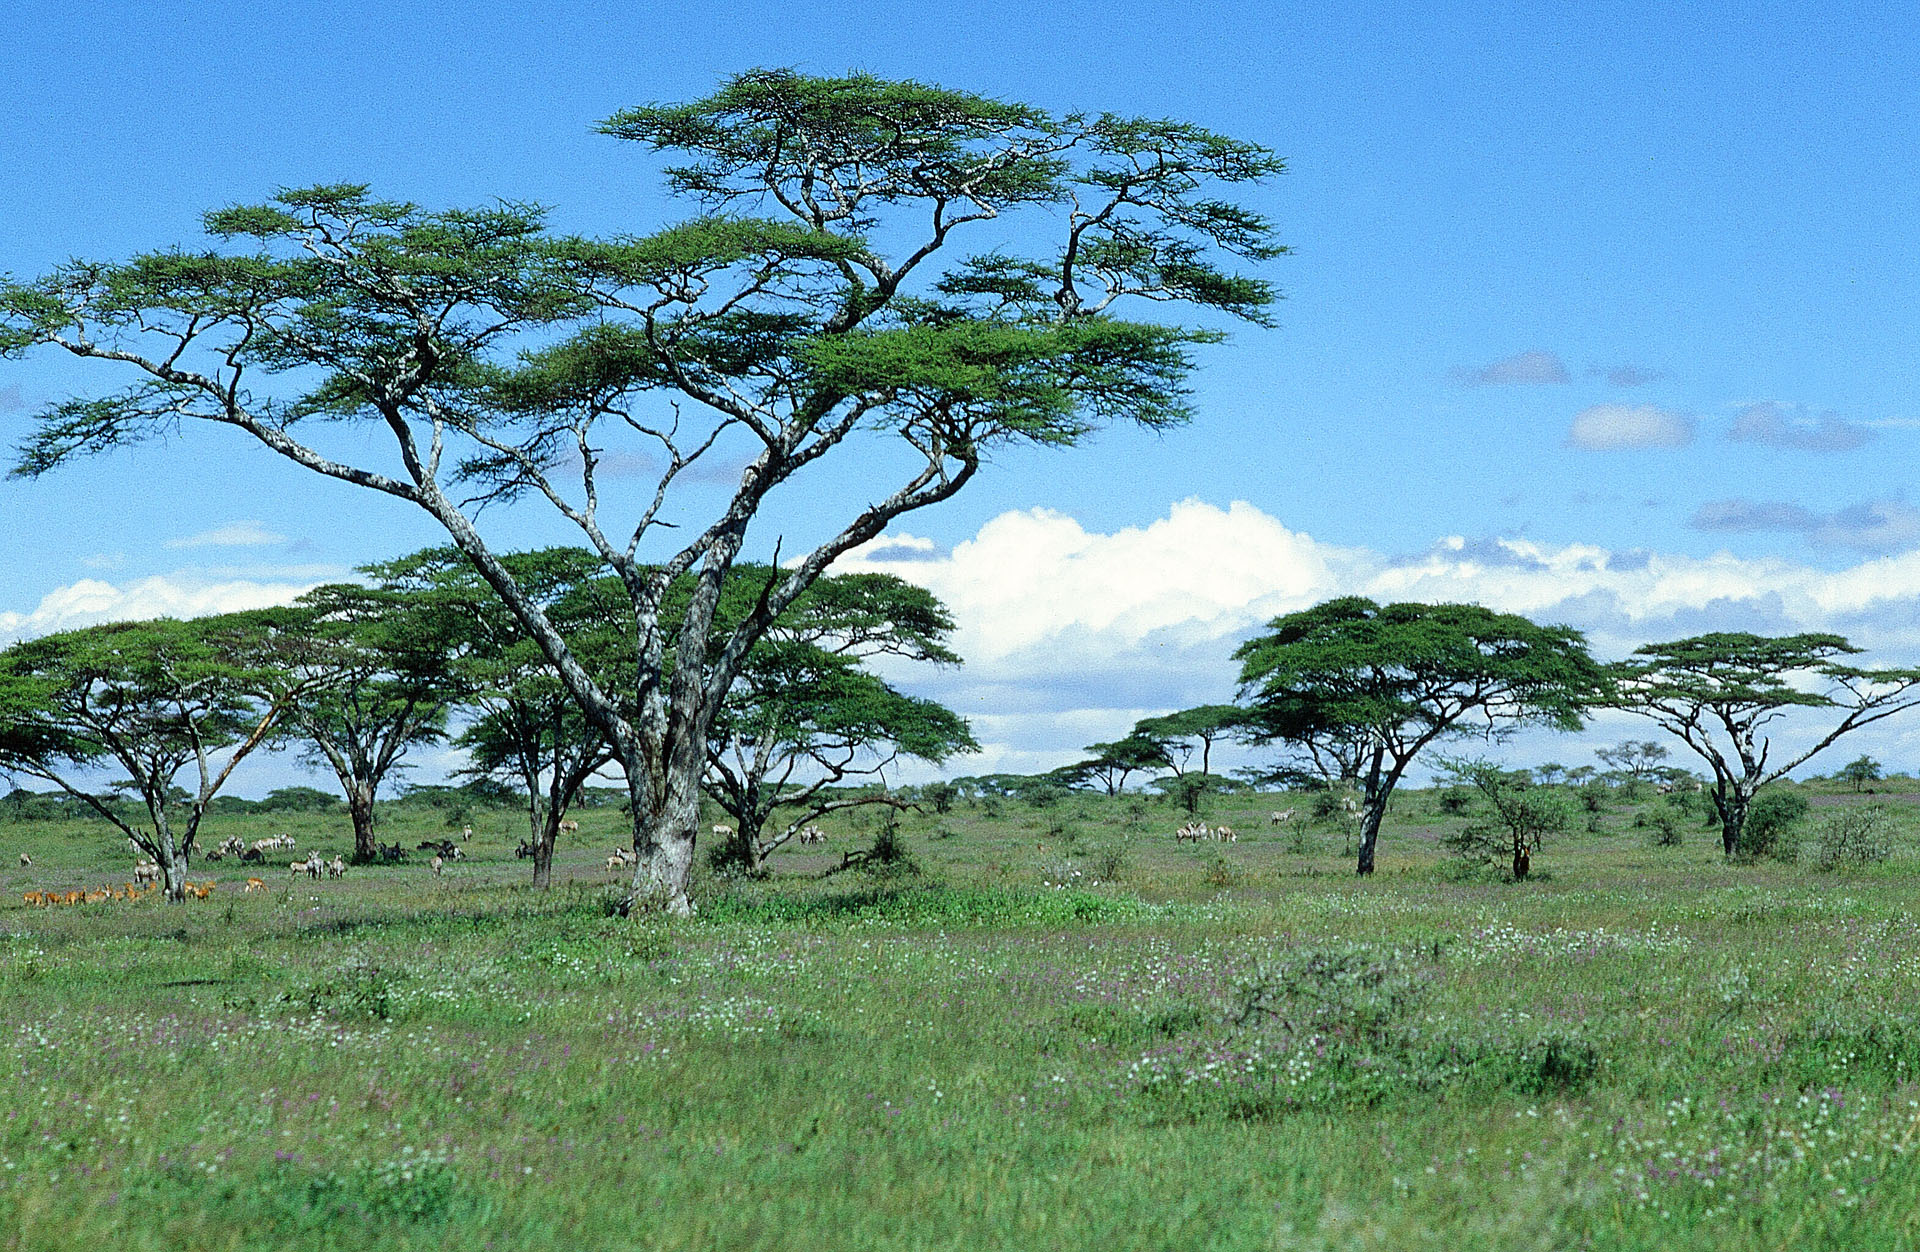 Umbrella thorn acacias (Vachellia tortilis, formerly Acacia tortilis) in the East African Serengeti are the epitome of a savanna landscape.